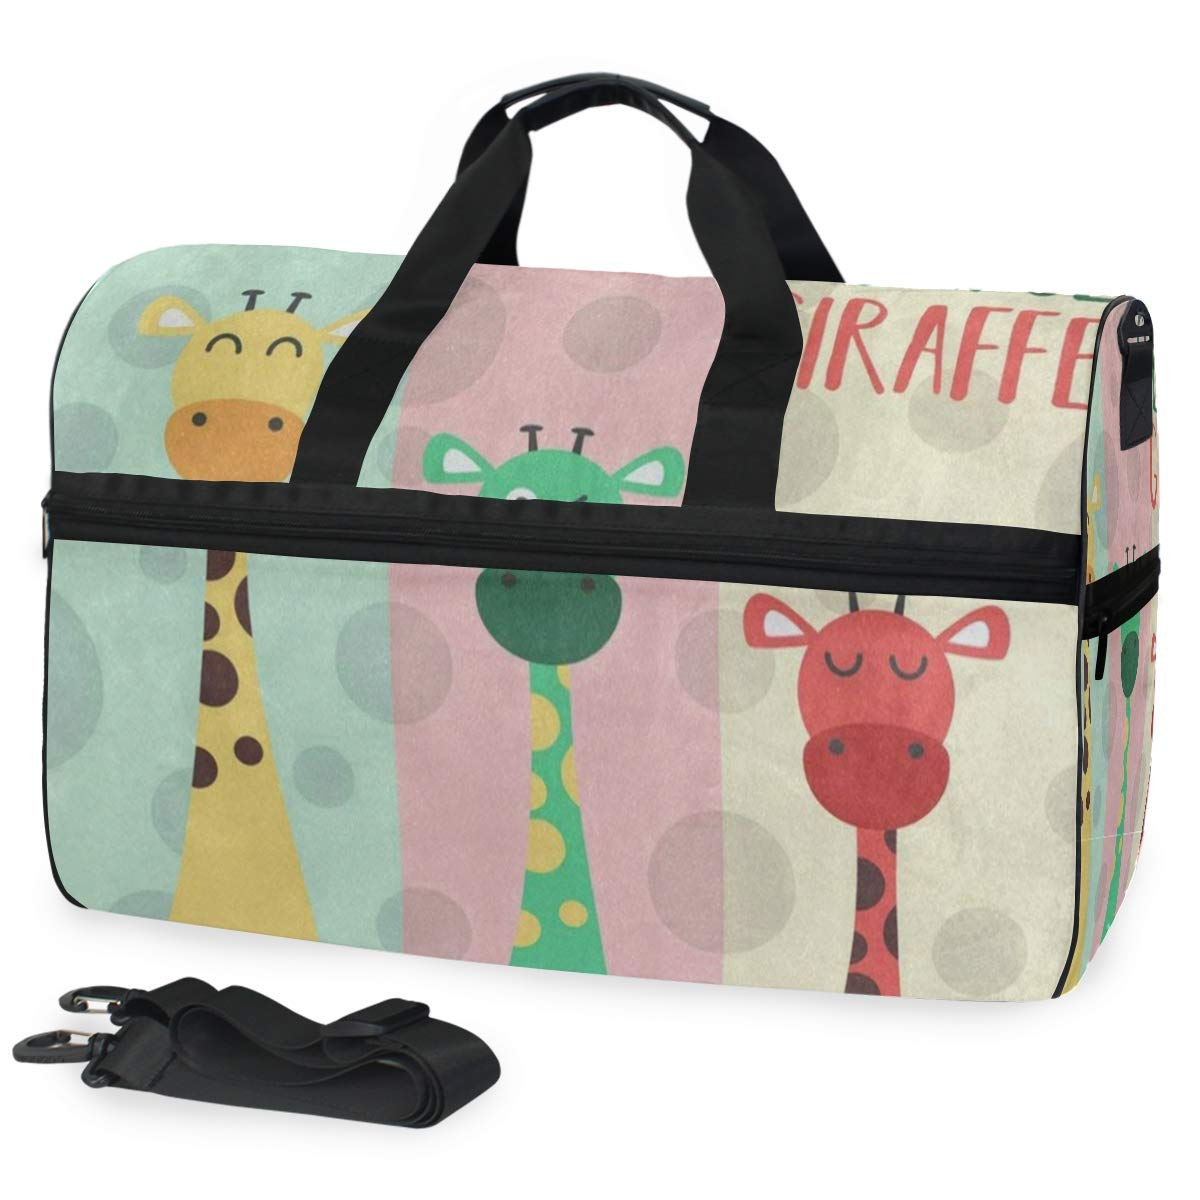 Colored Giraffe Polka Dot Large Canvas shoulder bag with Shoe Compartment Travel Tote Luggage Weekender Duffle Bag